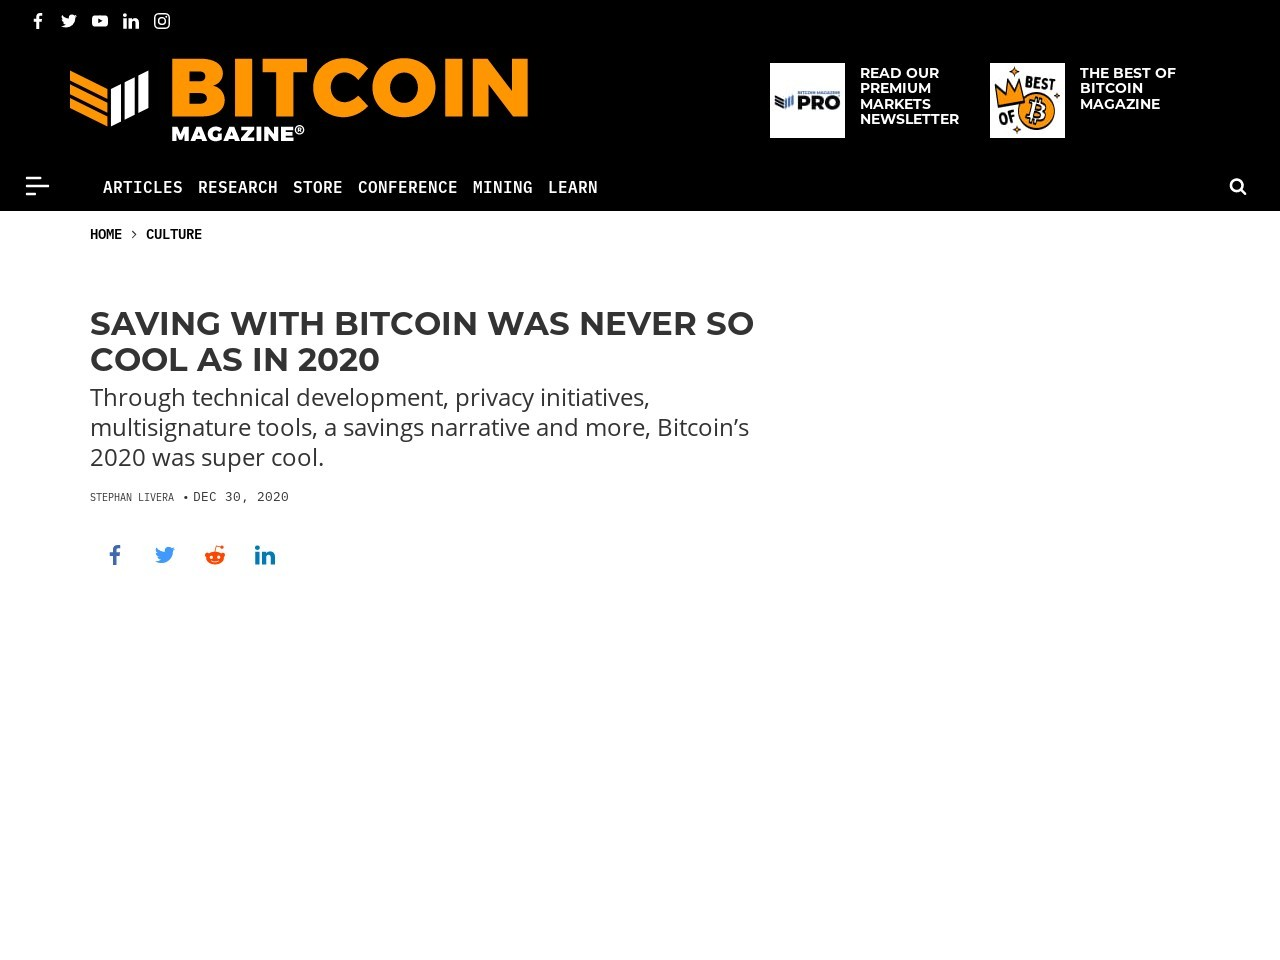 Saving With Bitcoin Was Never So Cool As In 2020